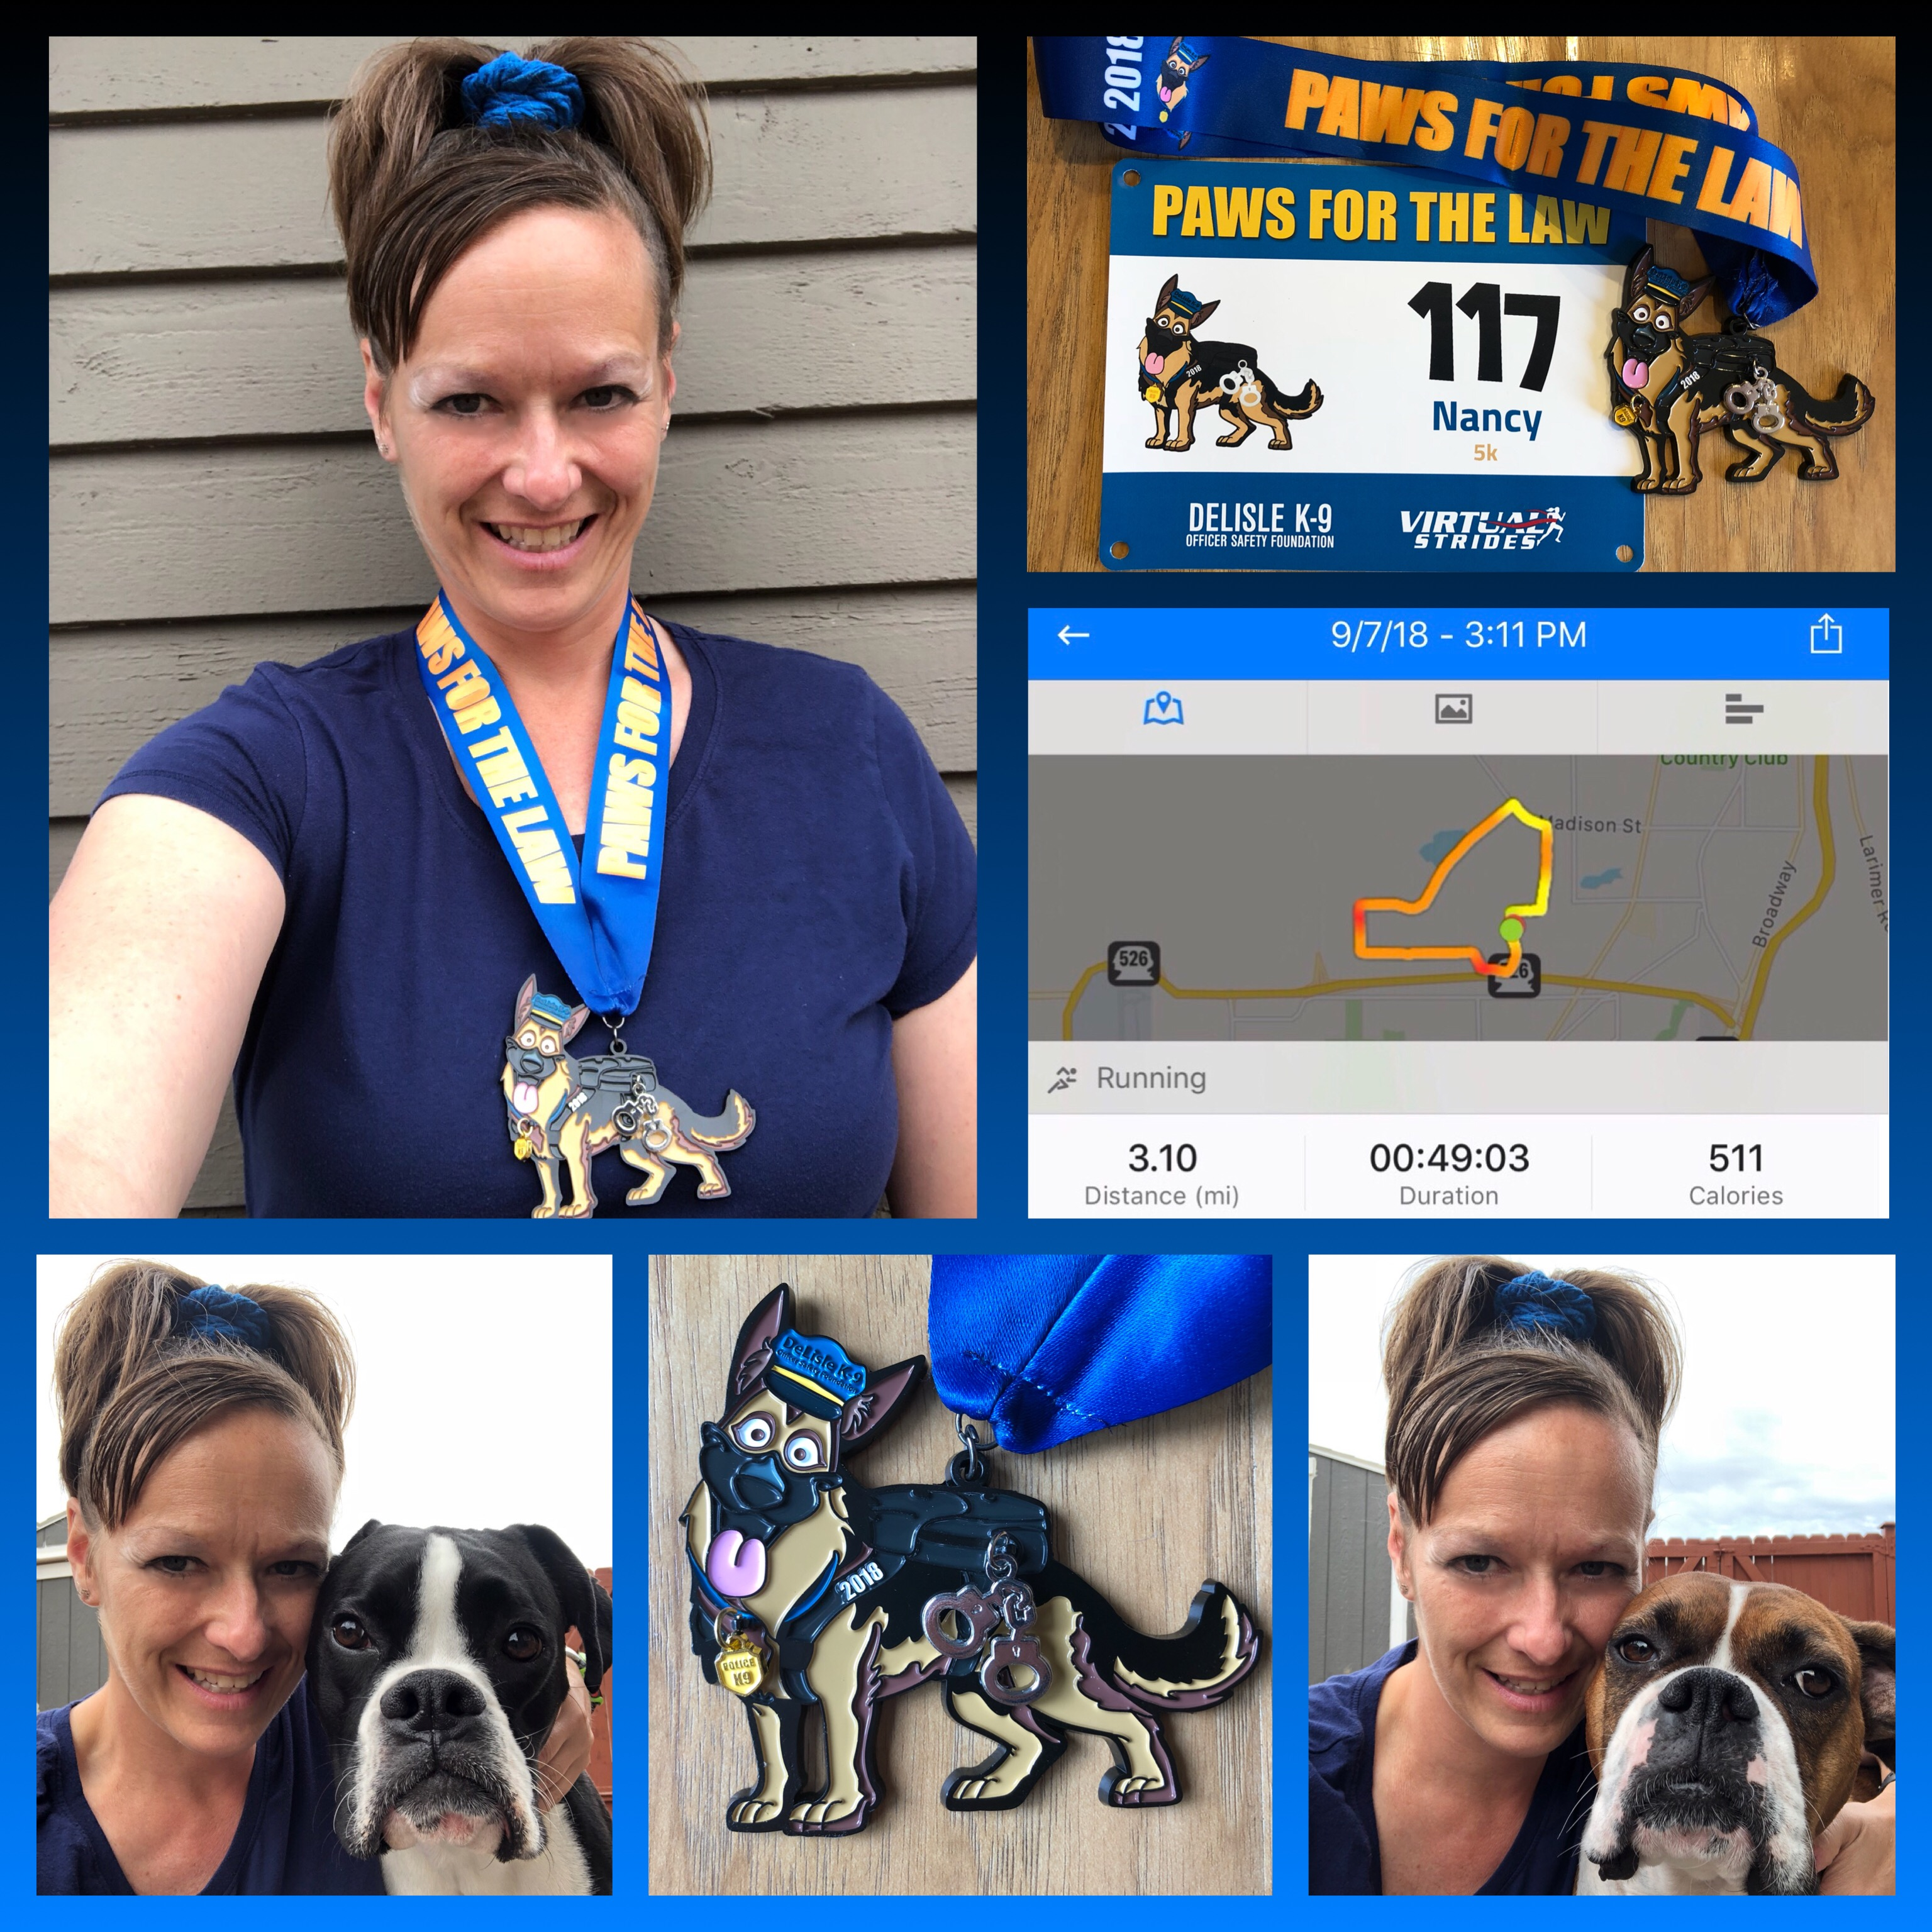 Paws for the Law 2018 5k Results – Virtual Strides